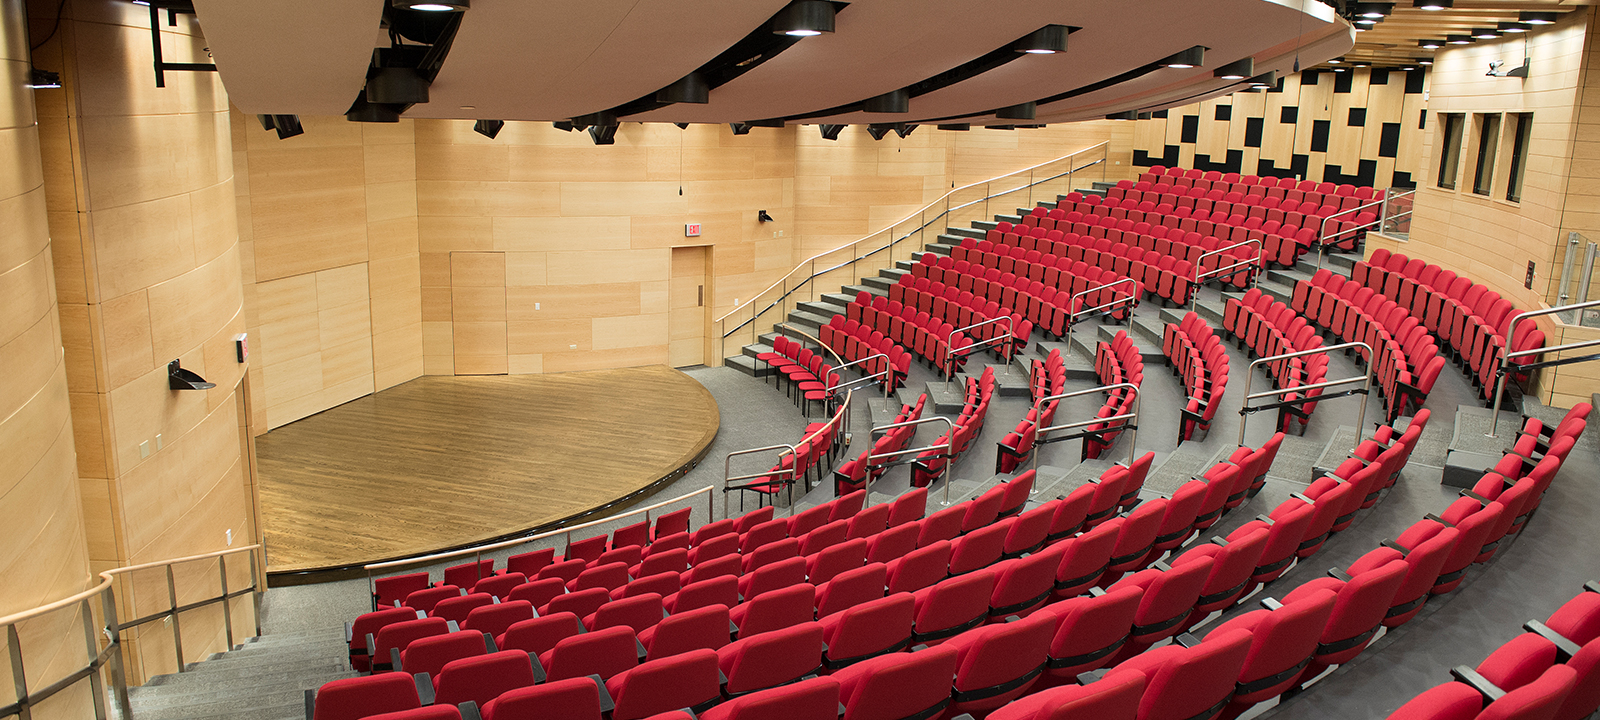 Nunemaker Auditorium